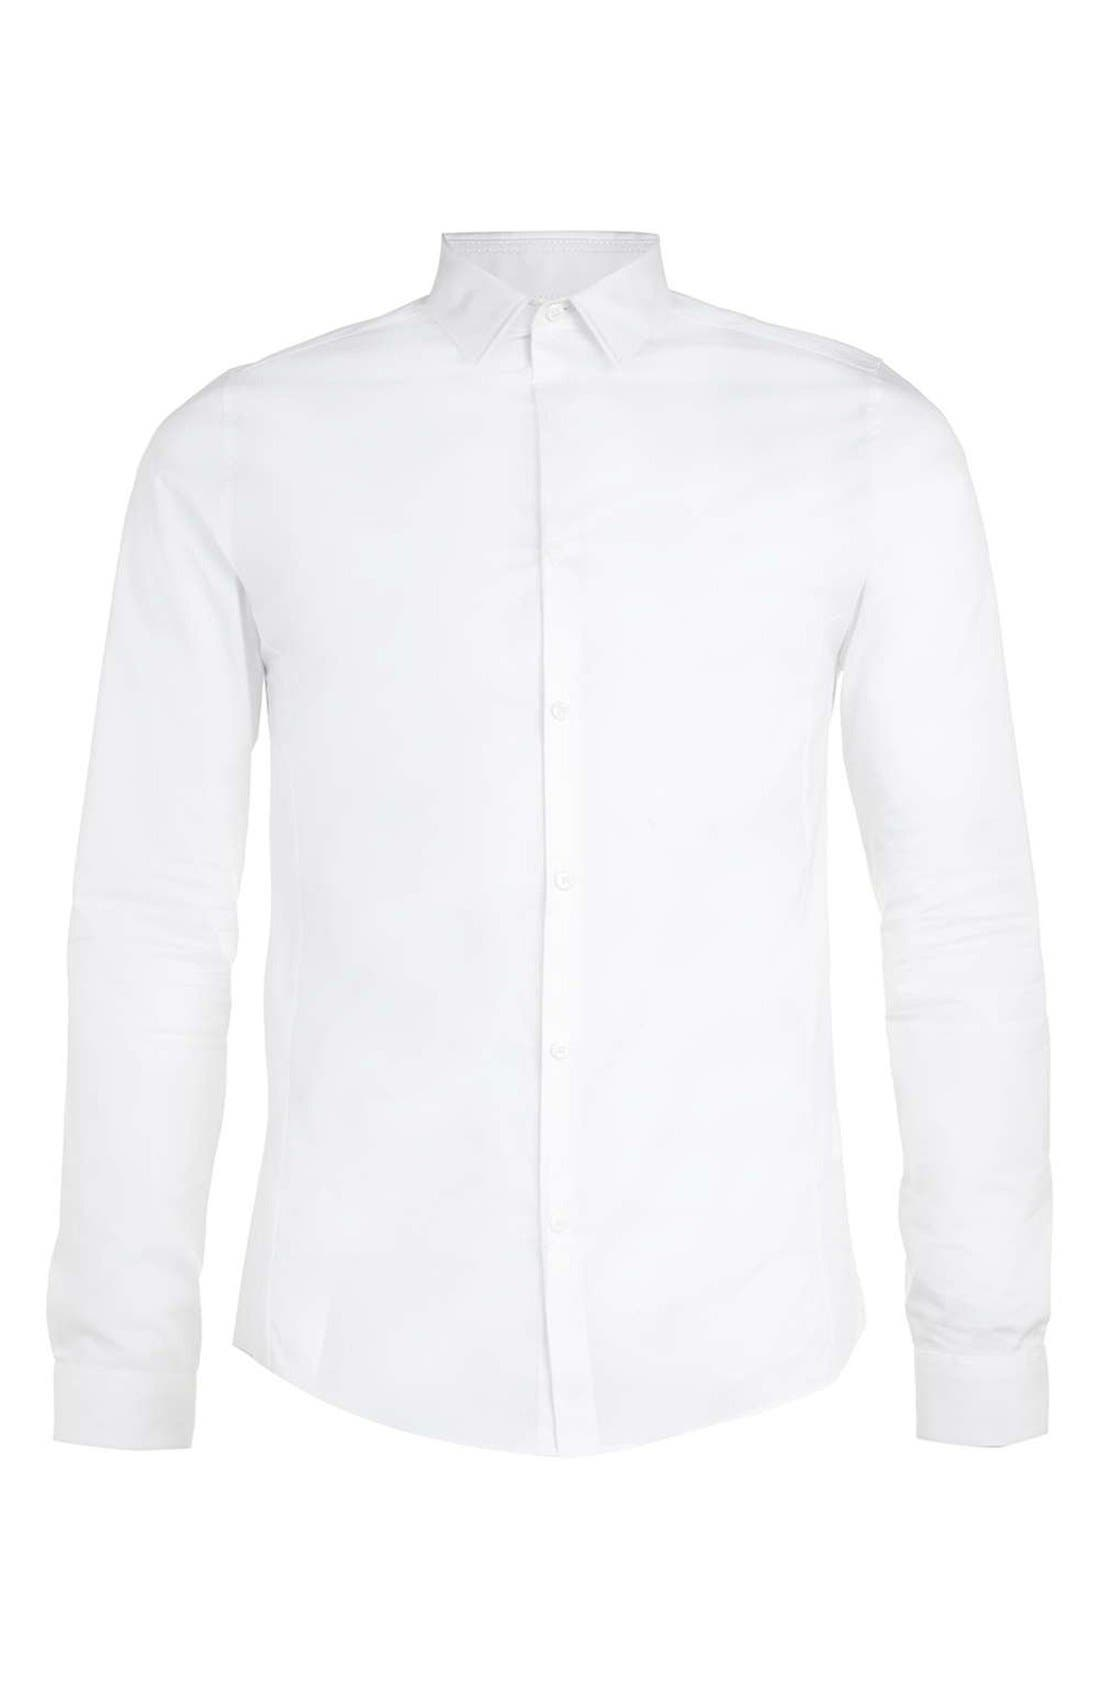 Long Sleeve Woven Shirt,                             Alternate thumbnail 4, color,                             WHITE